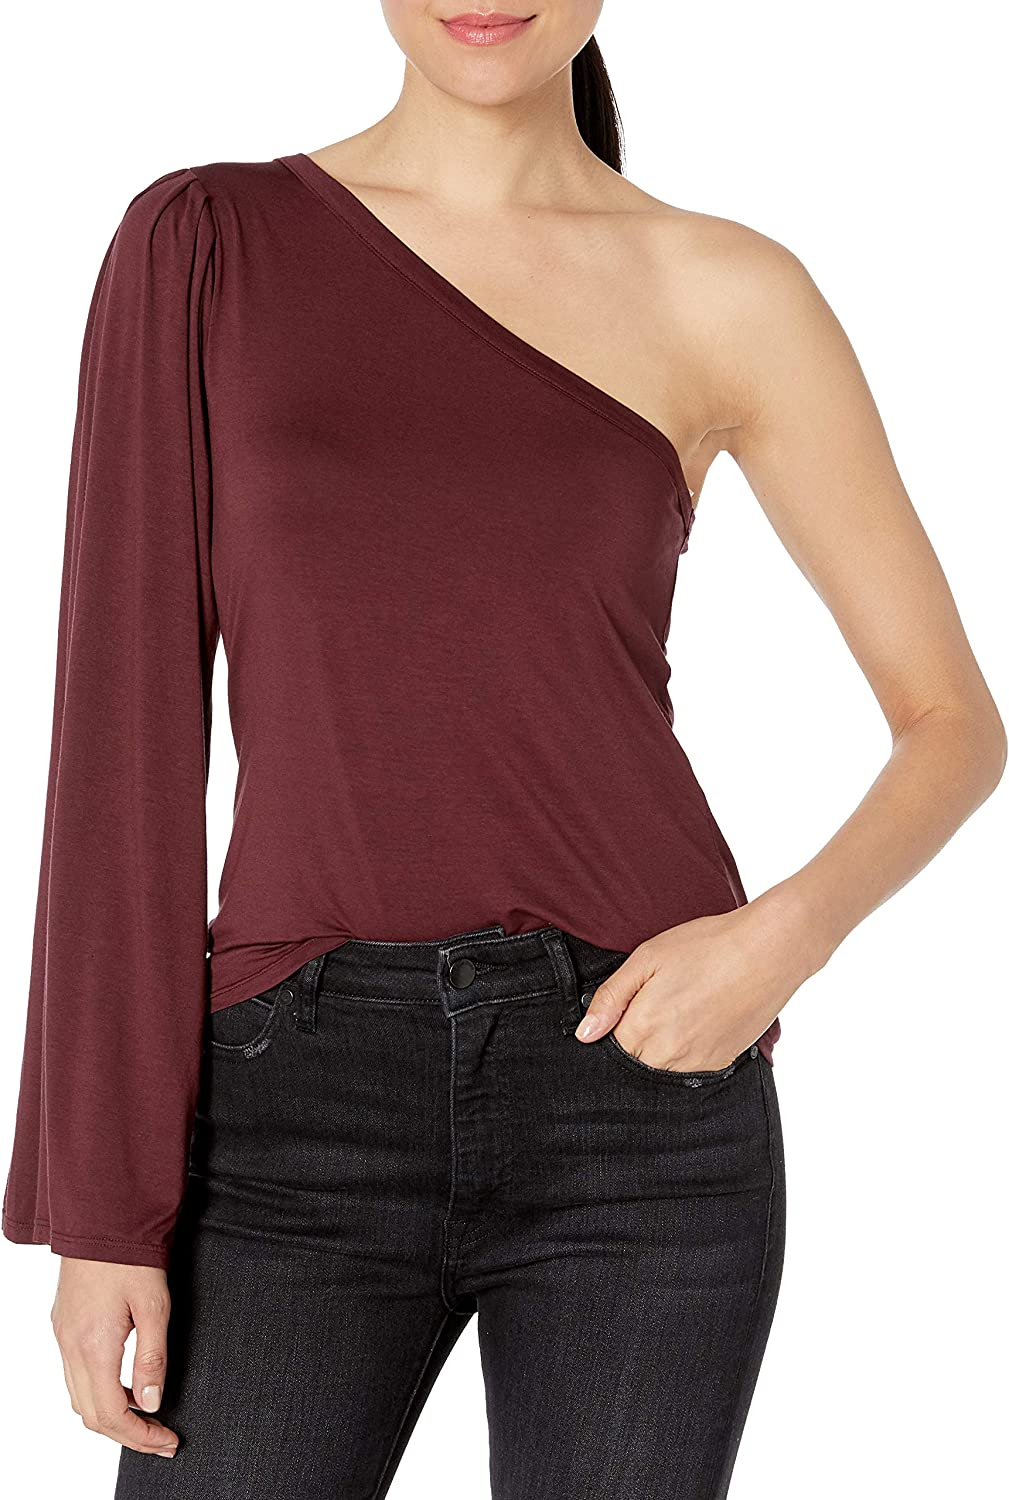 Three Dots Very popular Women's Refined Jersey Shoulder Mid Max 62% OFF Shirt Loose One